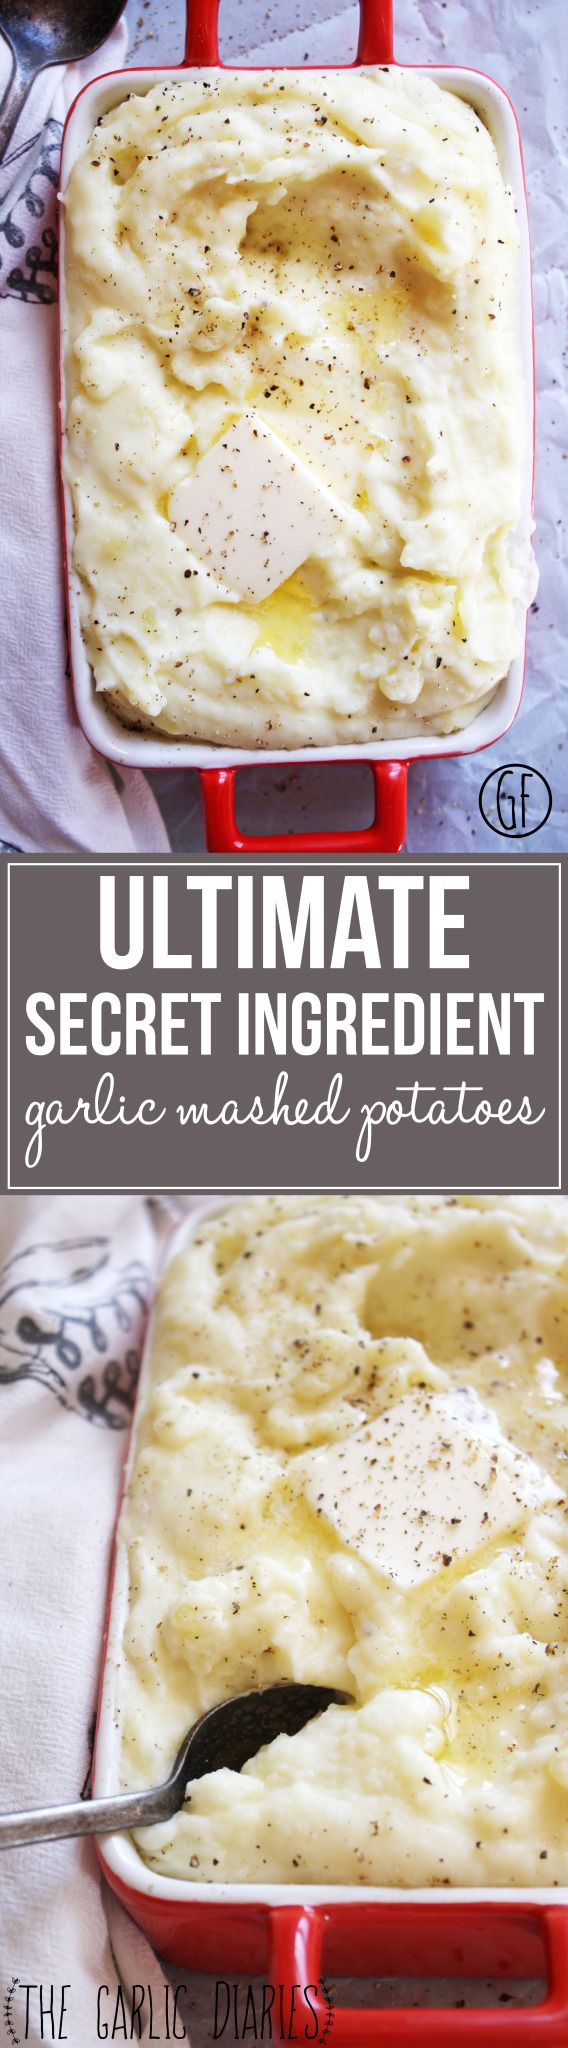 Ultimate Secret Ingredient Garlic Mashed Potatoes - a few special tricks set these mashed potatoes apart from all the others! Buttery, creamy, garlicky - it doesn't get any better than this :).